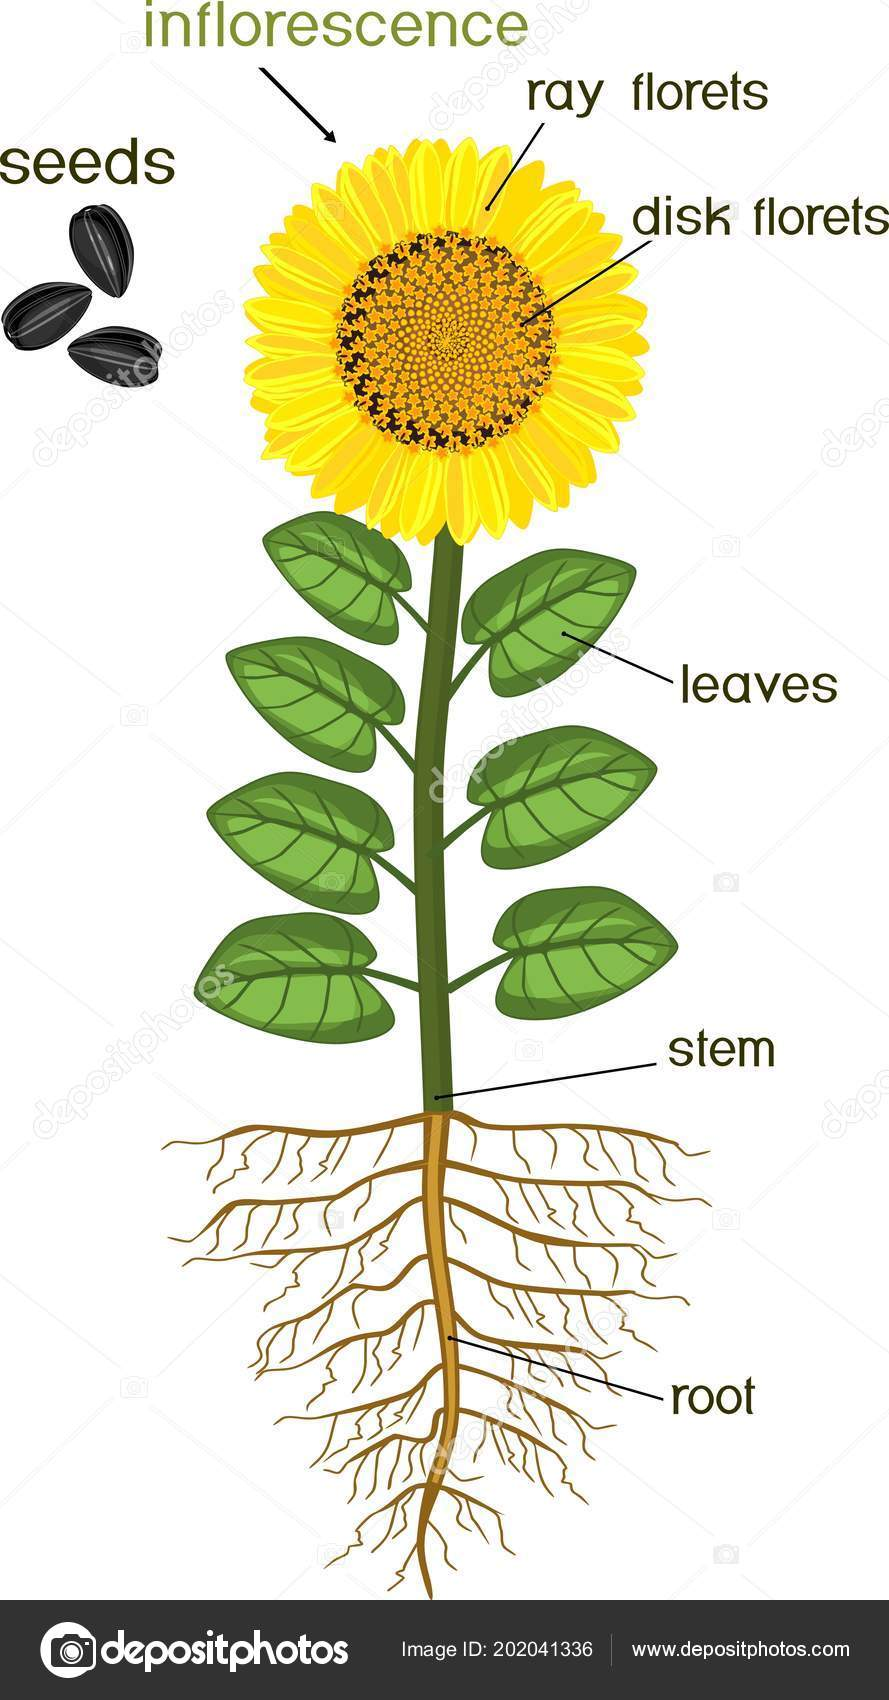 sunflower parts diagram wiring diagram project sunflower disc parts diagram sunflower parts diagram #2